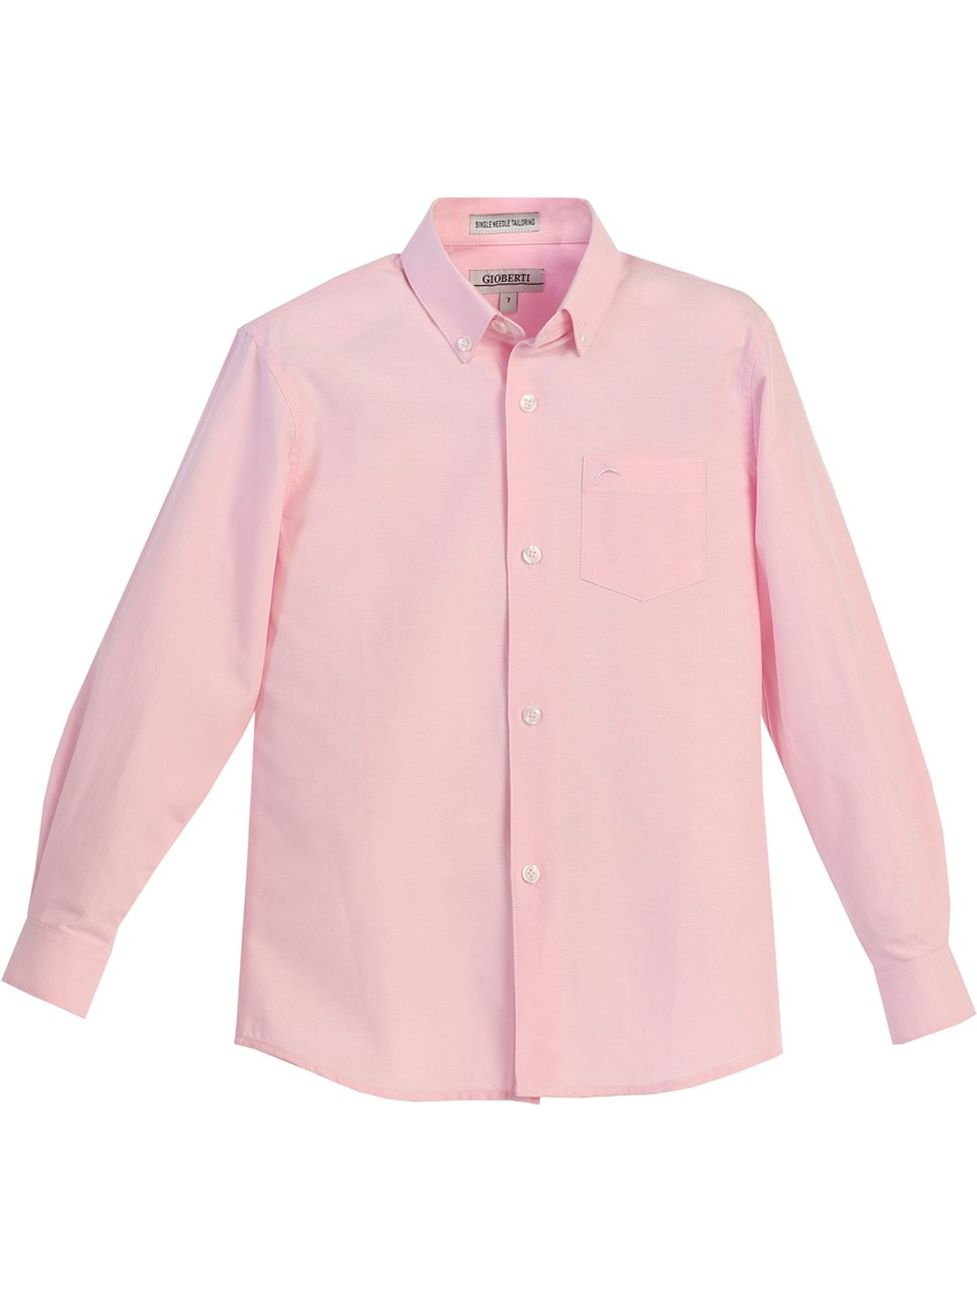 Gioberti Boys Pink Chest Pocket Long Sleeved Oxford Dress Shirt